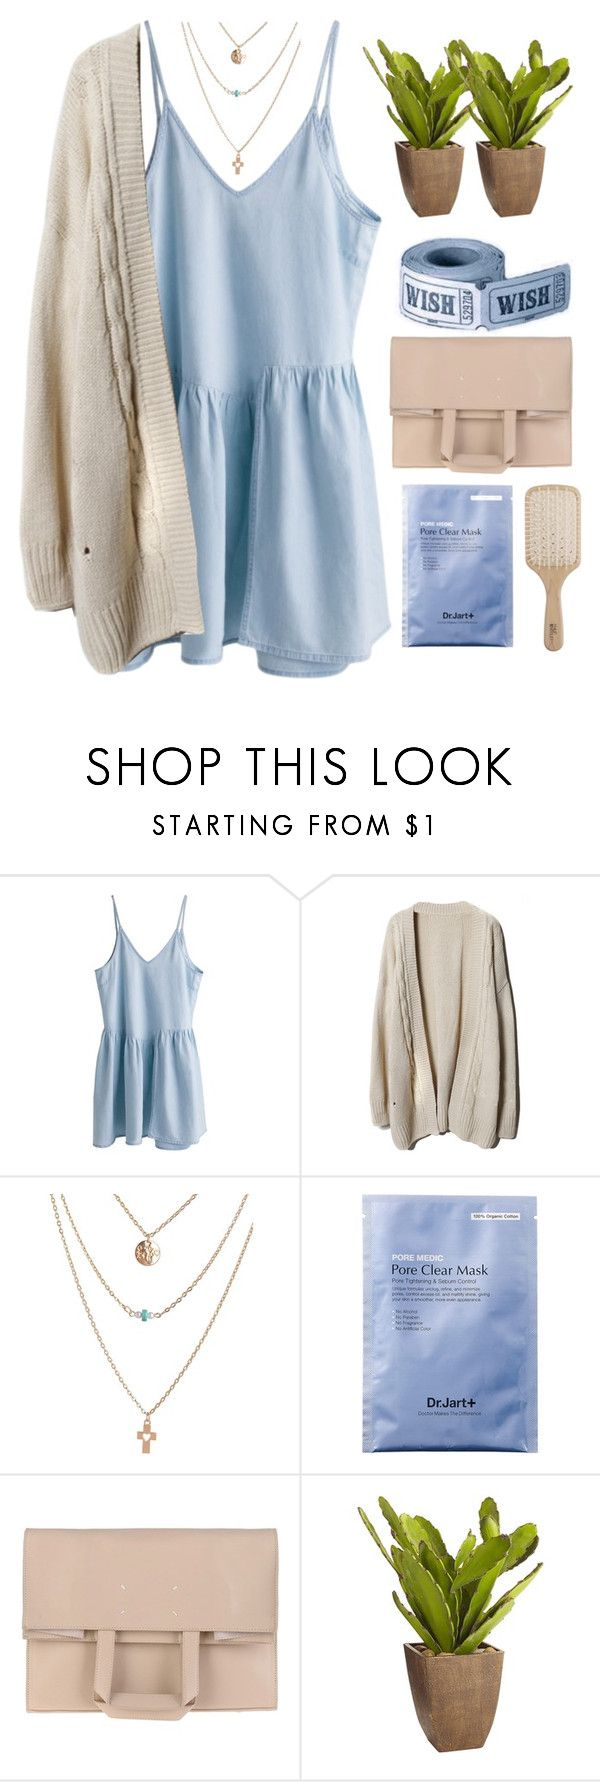 """#2139"" by credendovides ❤ liked on Polyvore featuring Maison Margiela, Pier 1 Imports and Philip Kingsley"